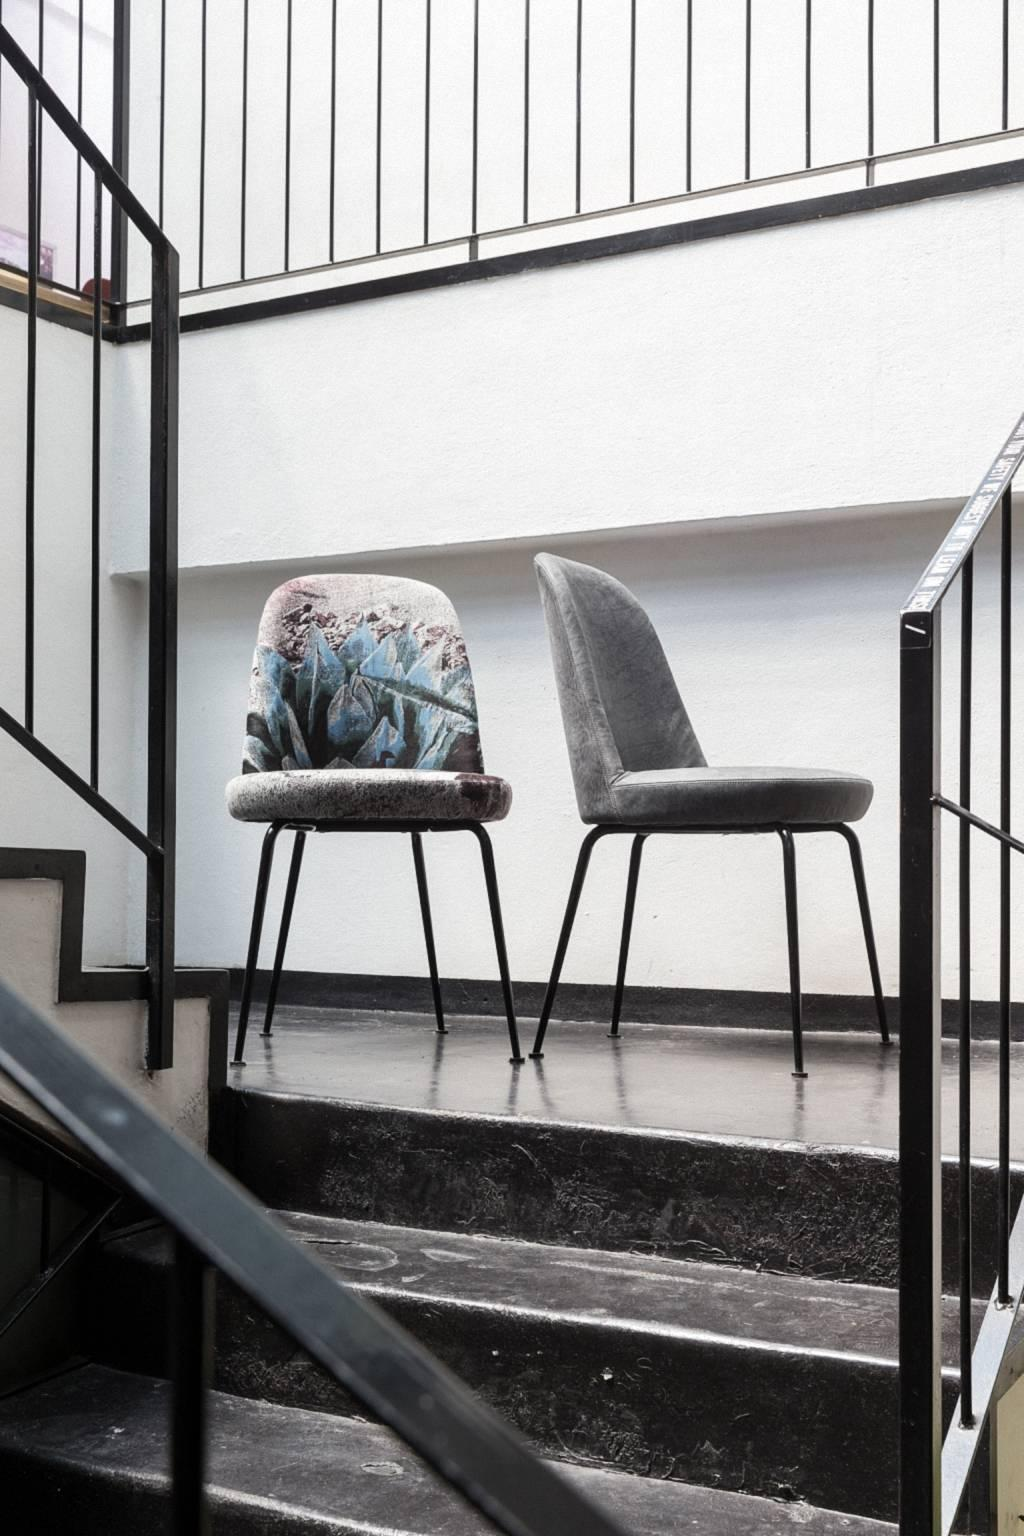 Hungry Upholstered Chair With Painted Steel Frame And Base By Moroso For Sel At 1stdibs